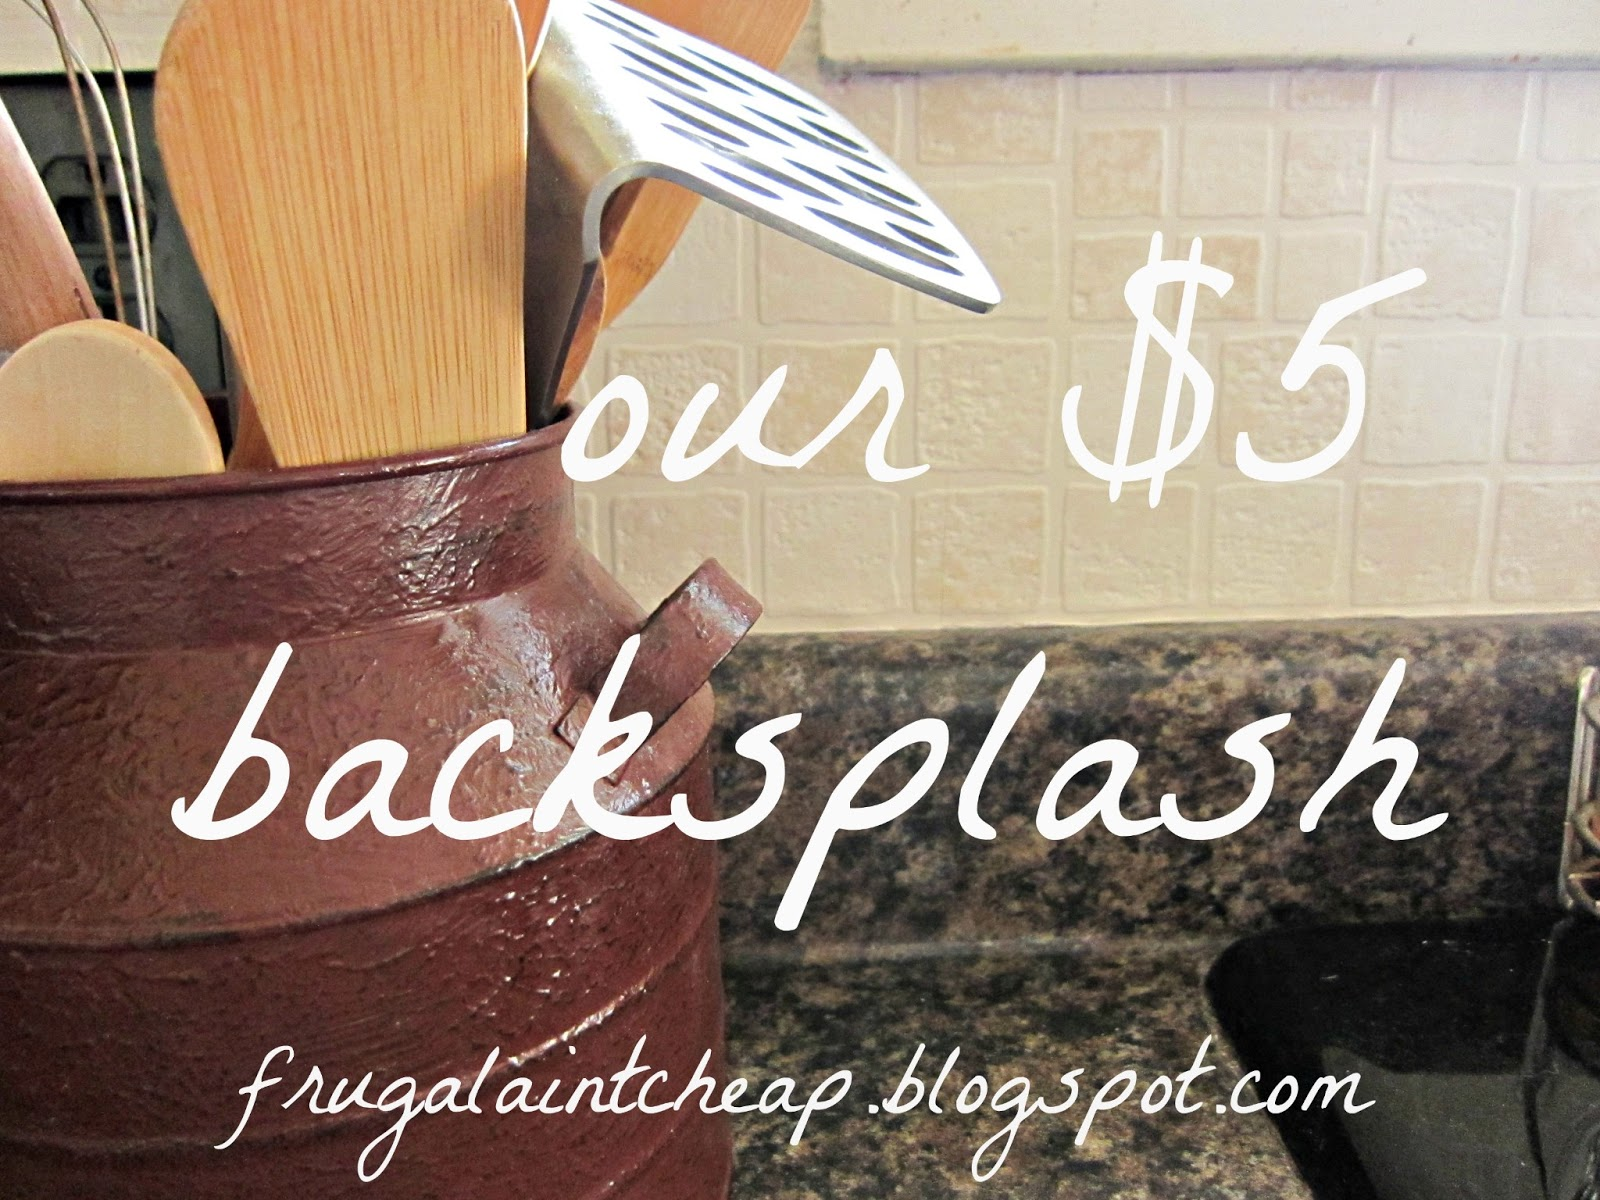 inexpensive kitchen makeovers 33x22 sink frugal ain't cheap: backsplash (great for renters too)